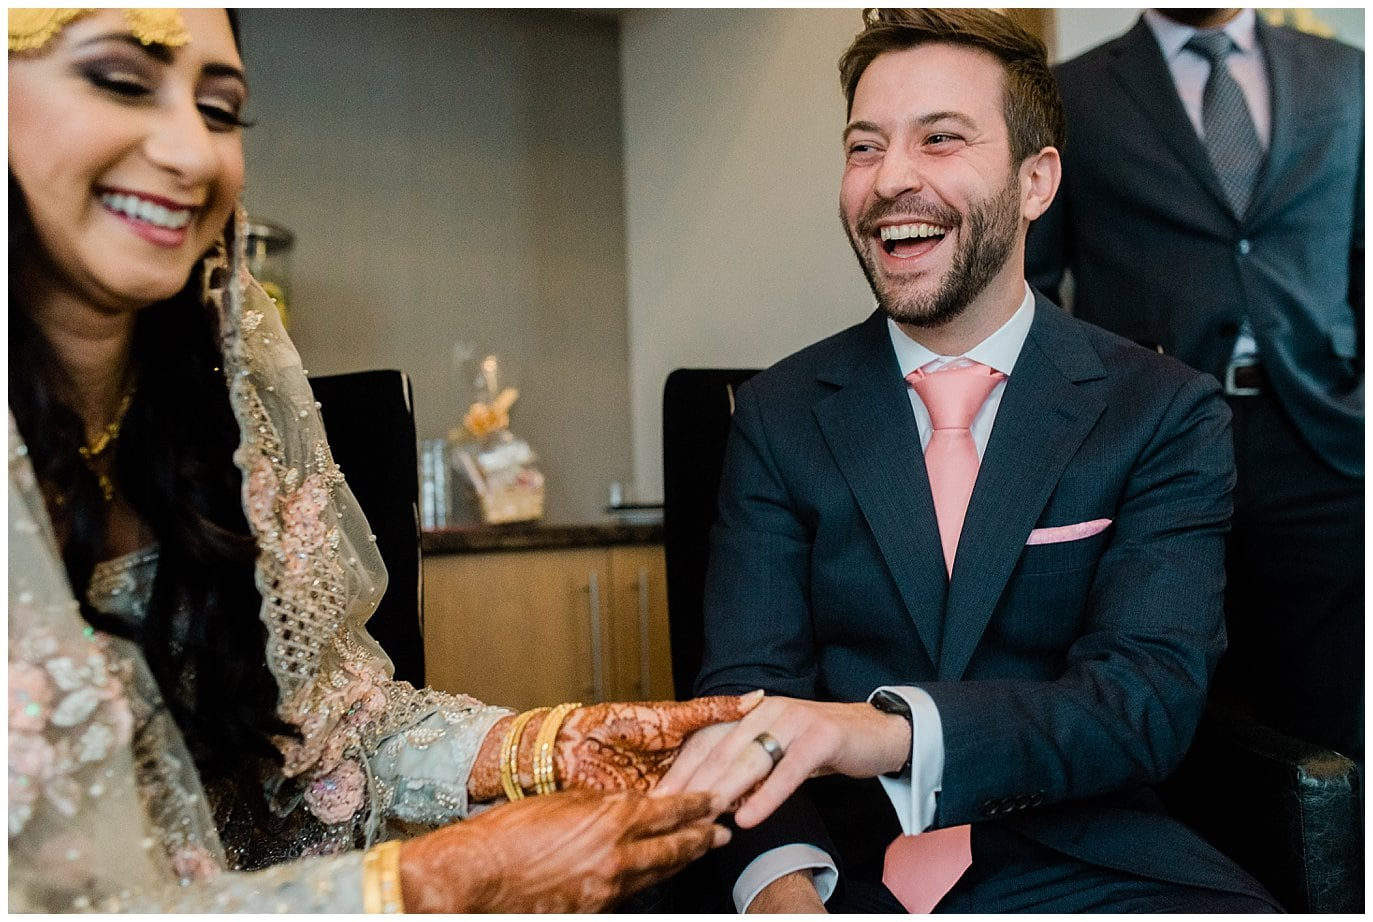 bride and groom exchange rings at Denver Nikah Ceremony Photo